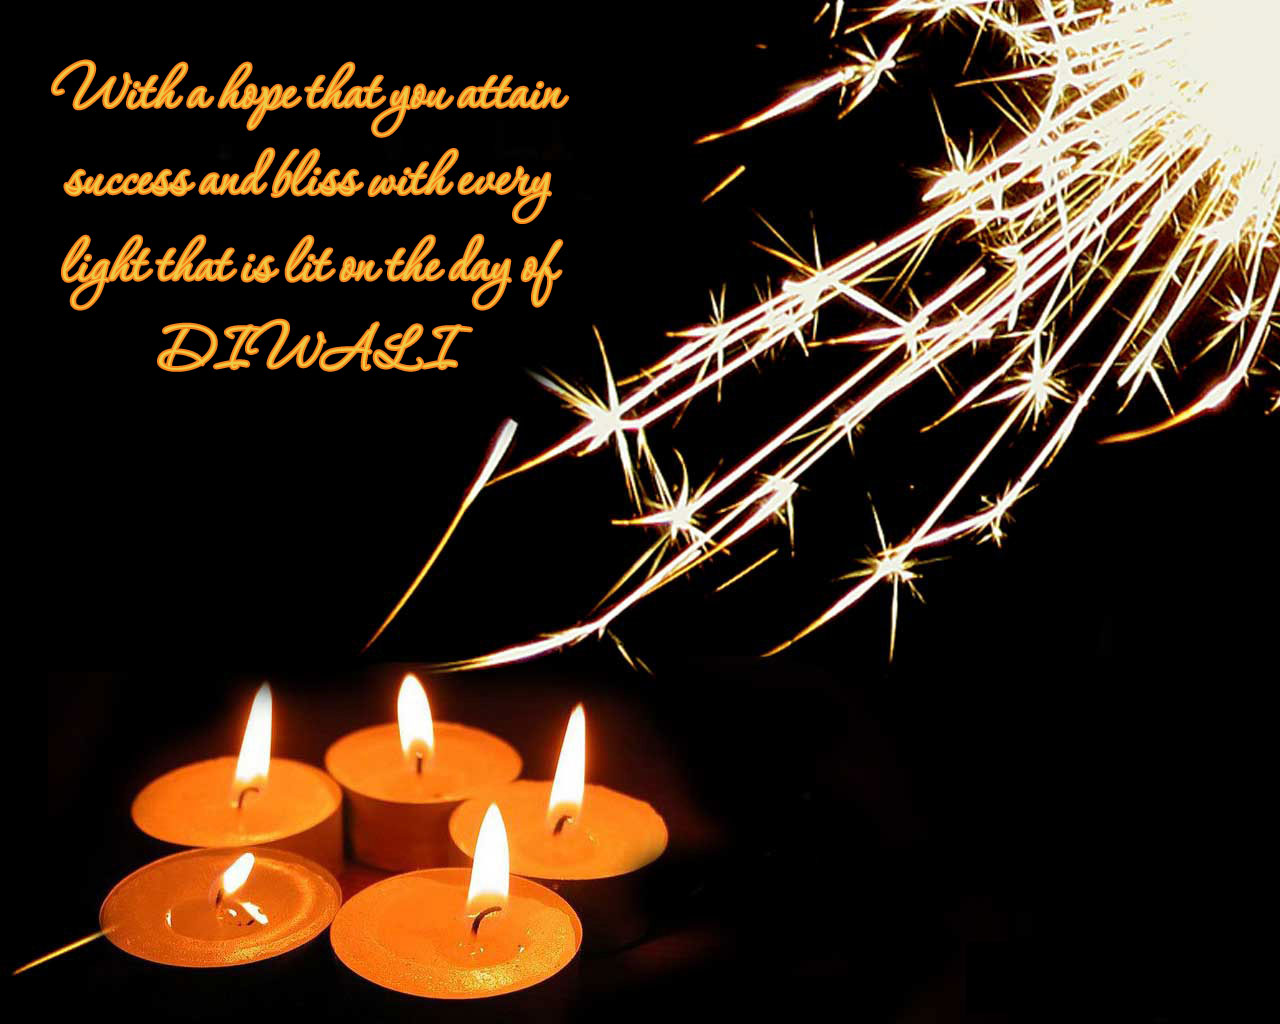 Wishing Diwali Photo Greeting Senju Naruto Deviantart Photos 8 Bit